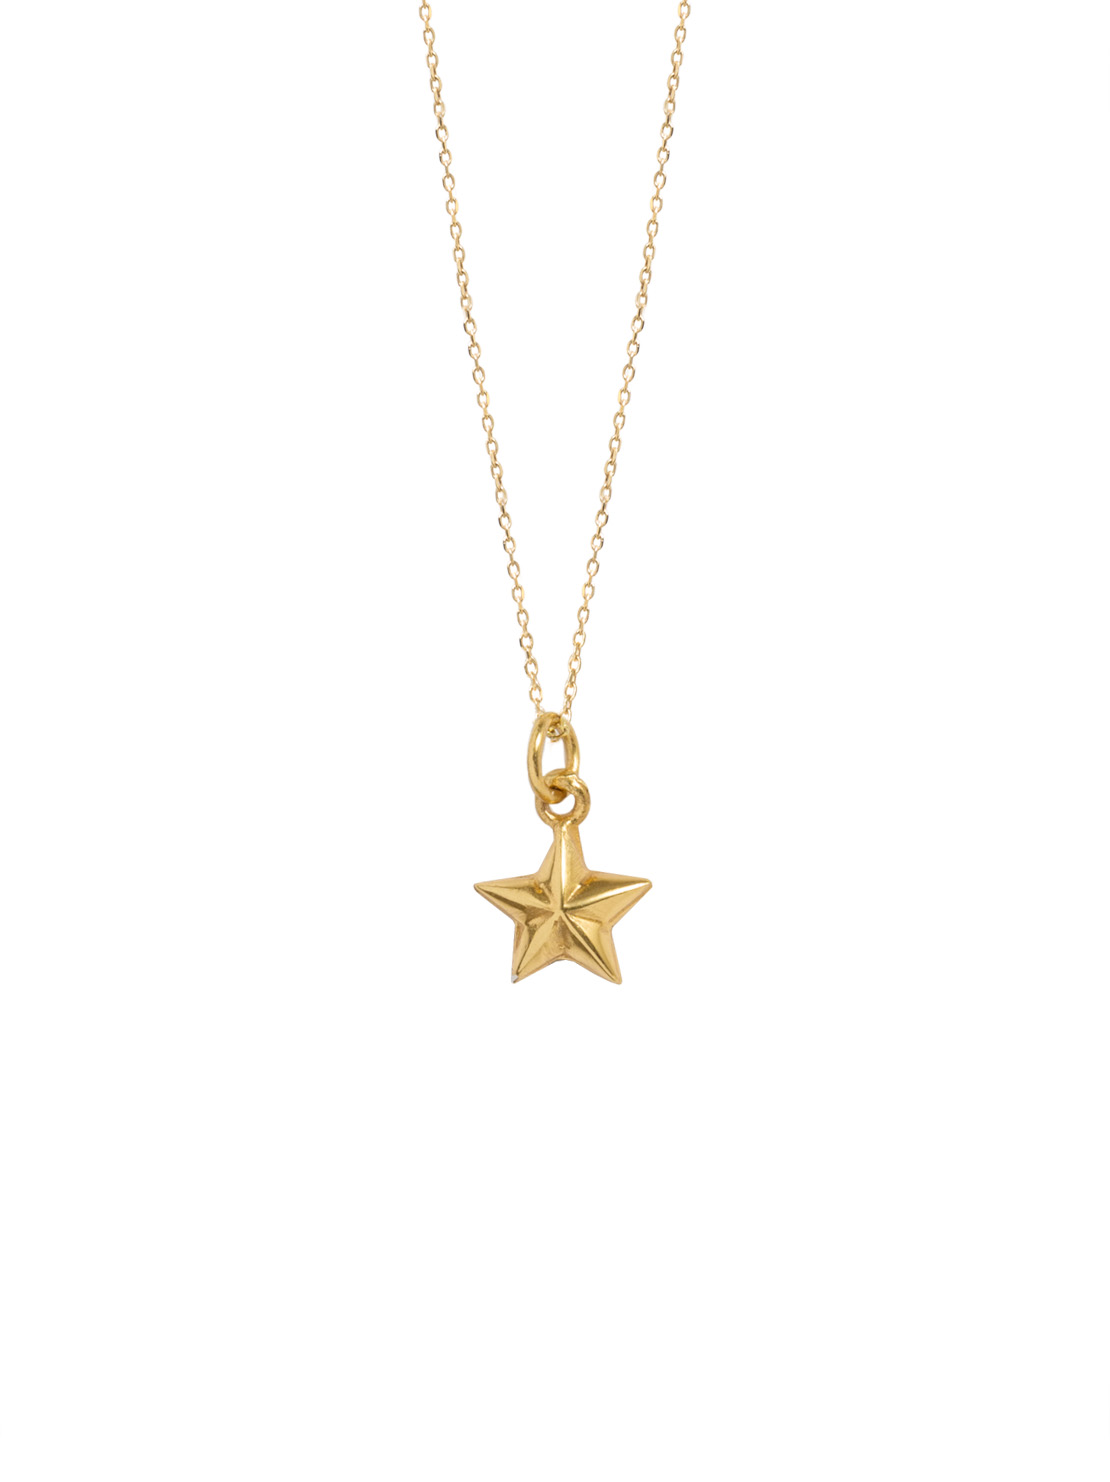 gold necklace star necklaces tiny image vermeil muru jewellery hope